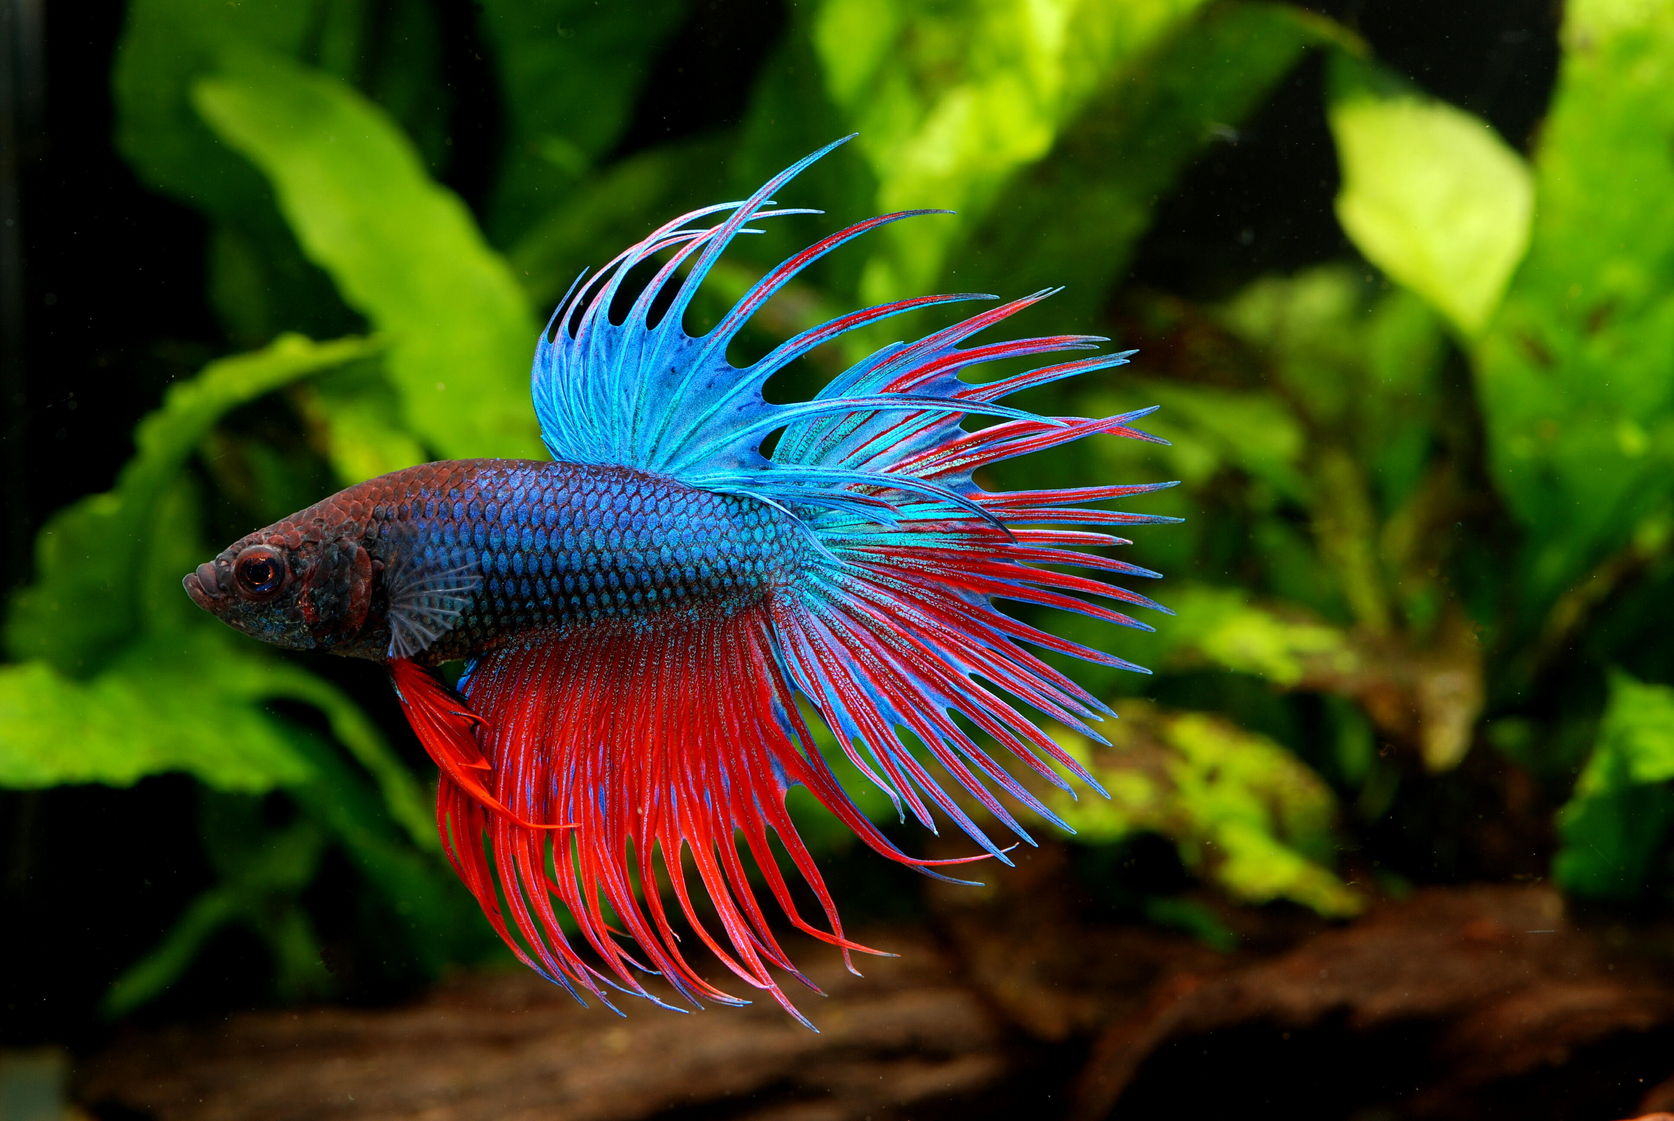 The Betta fish, Siamese fighting fish, or betta as it's known by its genus, is an elegant tropical freshwater fish that is popular as a pet and often housed in eclectic home aquariums. In the wild, native to areas like Cambodia and Thailand, the betta inhabits rice paddies and still .